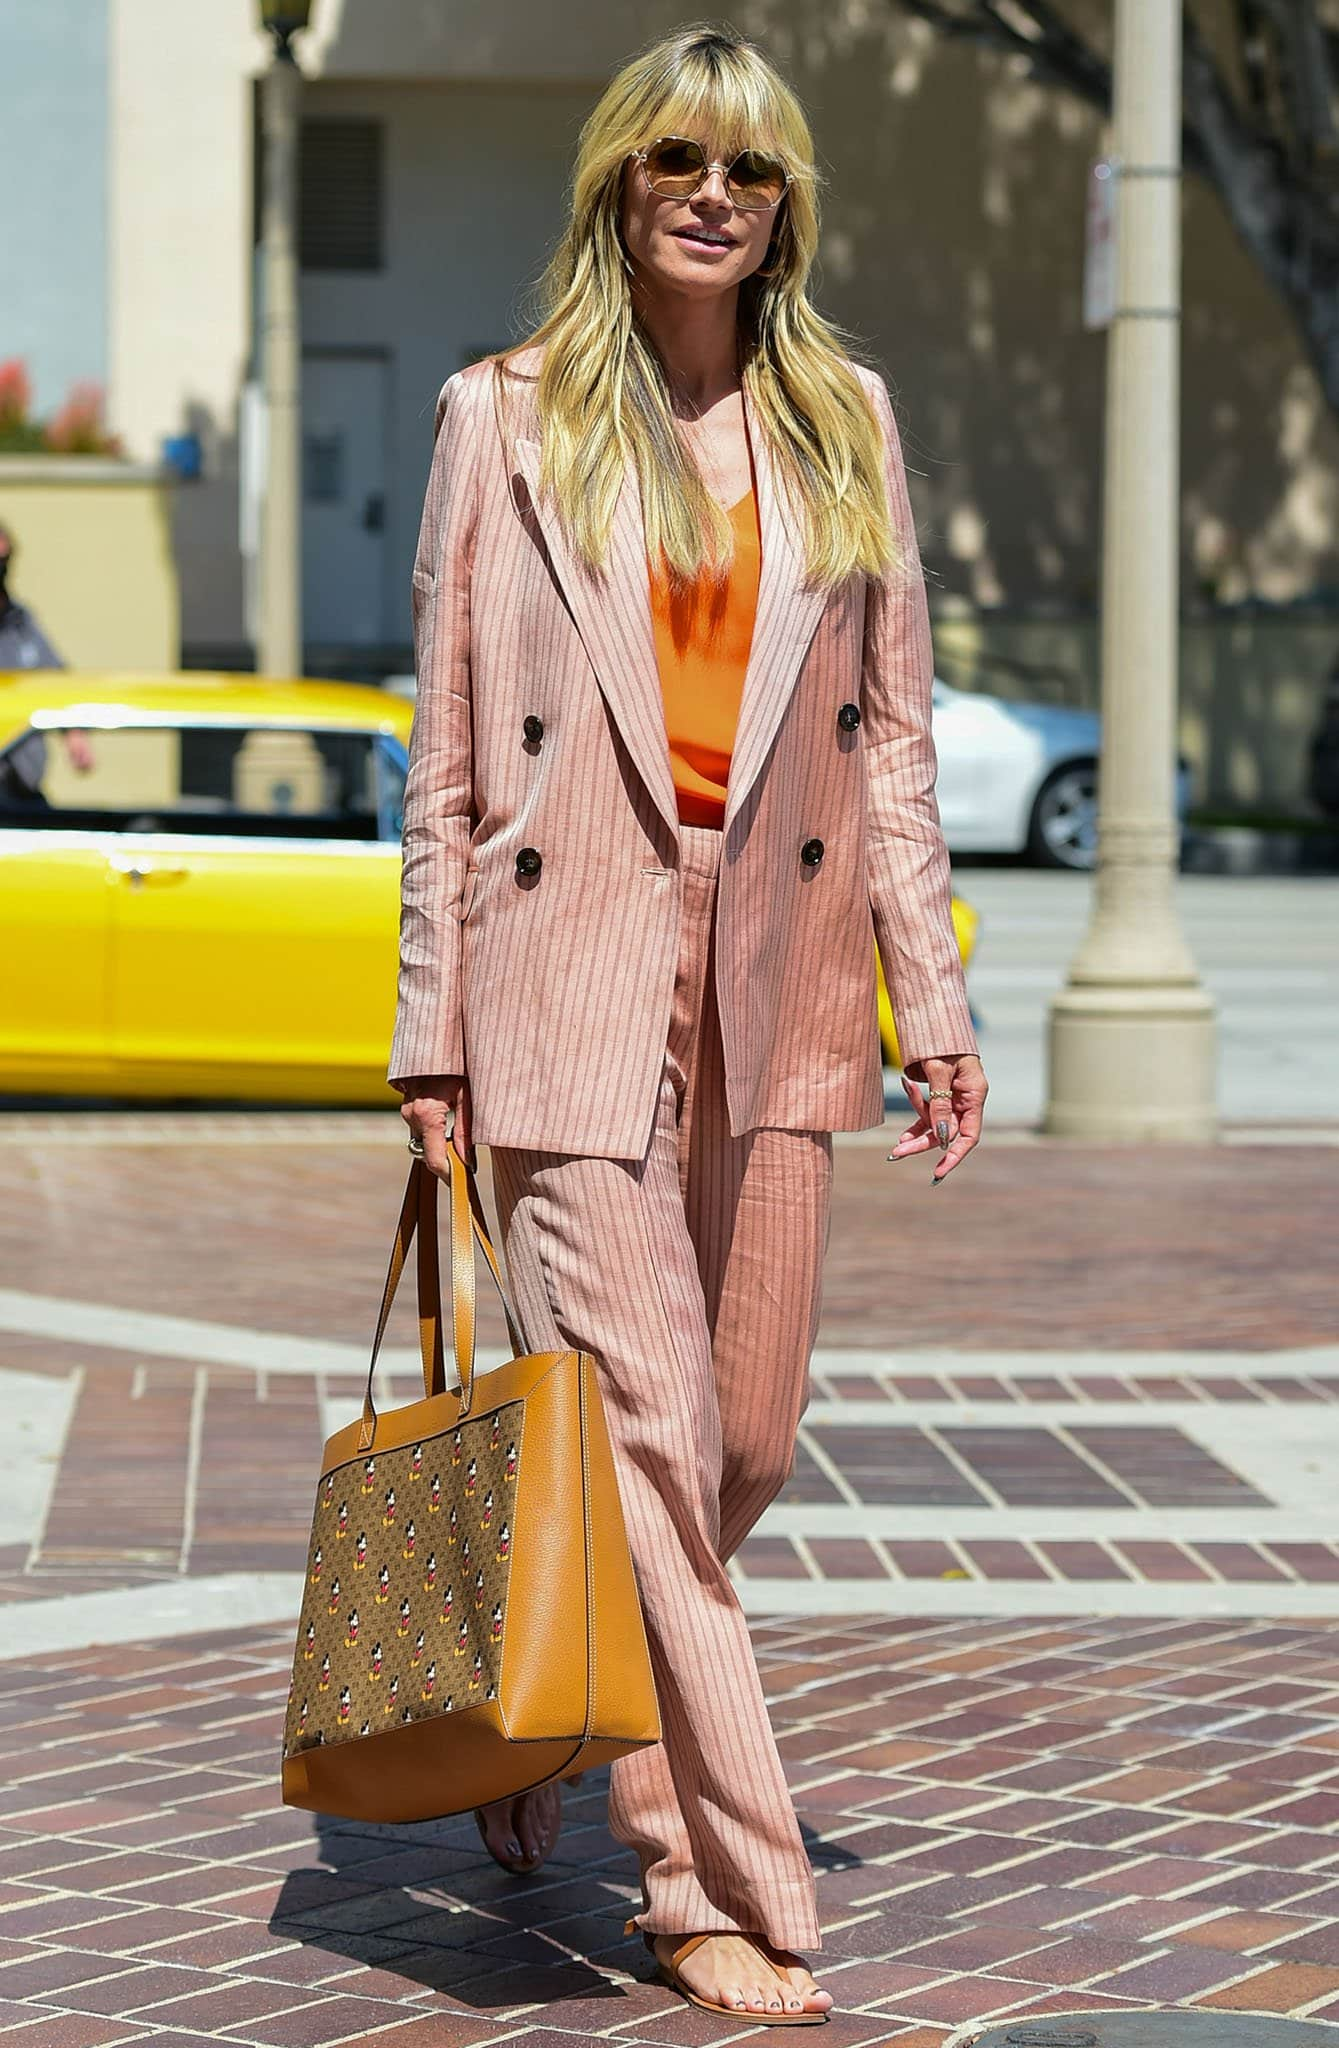 Heidi Klum continues style streak in a pink pinstripe power suit with an orange tee on March 30, 2021